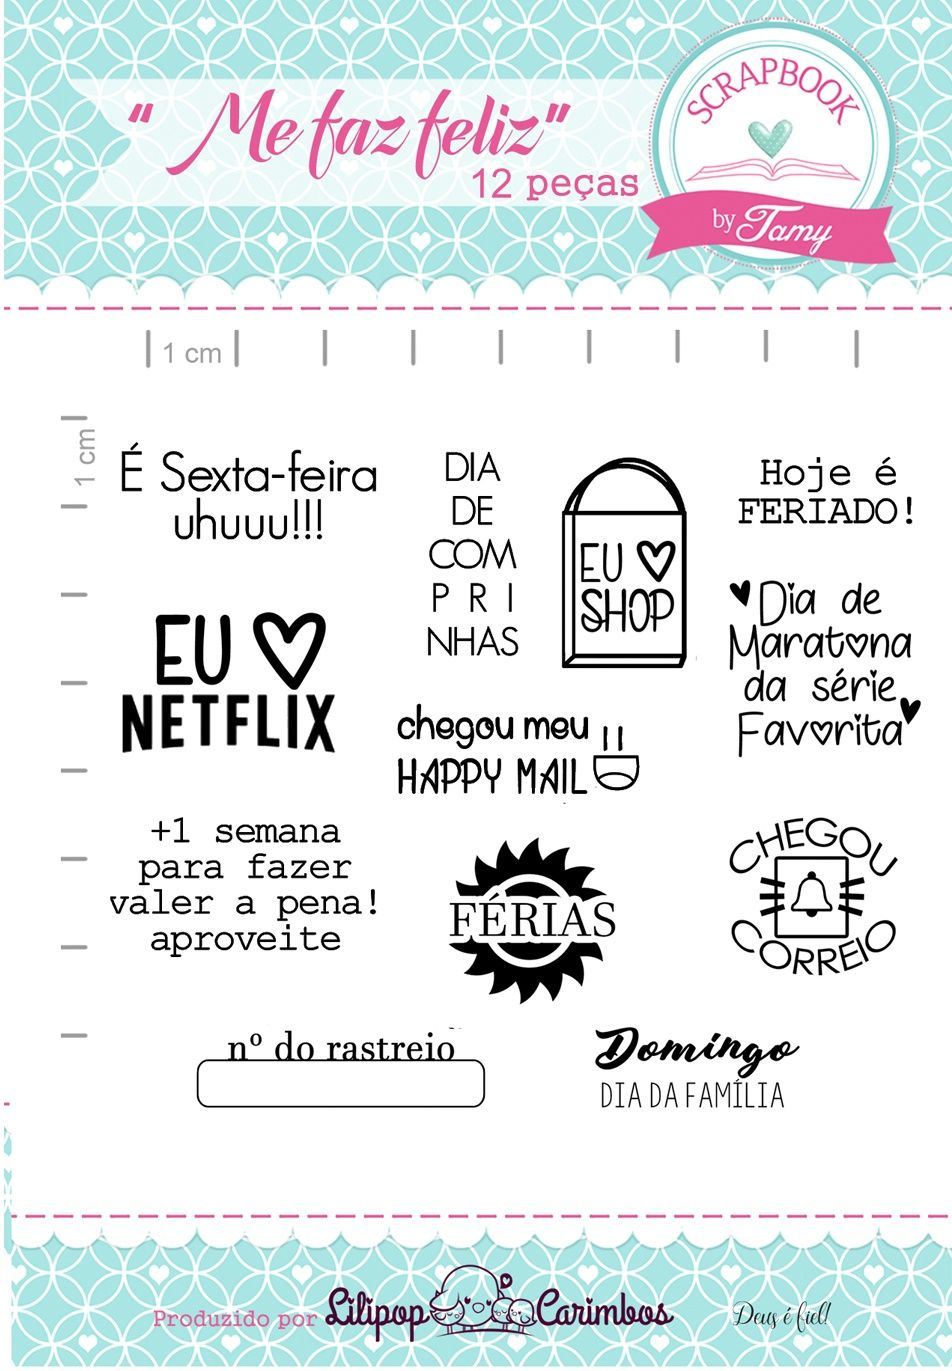 Kit de Carimbos - Me faz feliz - Scrapbook by Tamy (OUTLET)